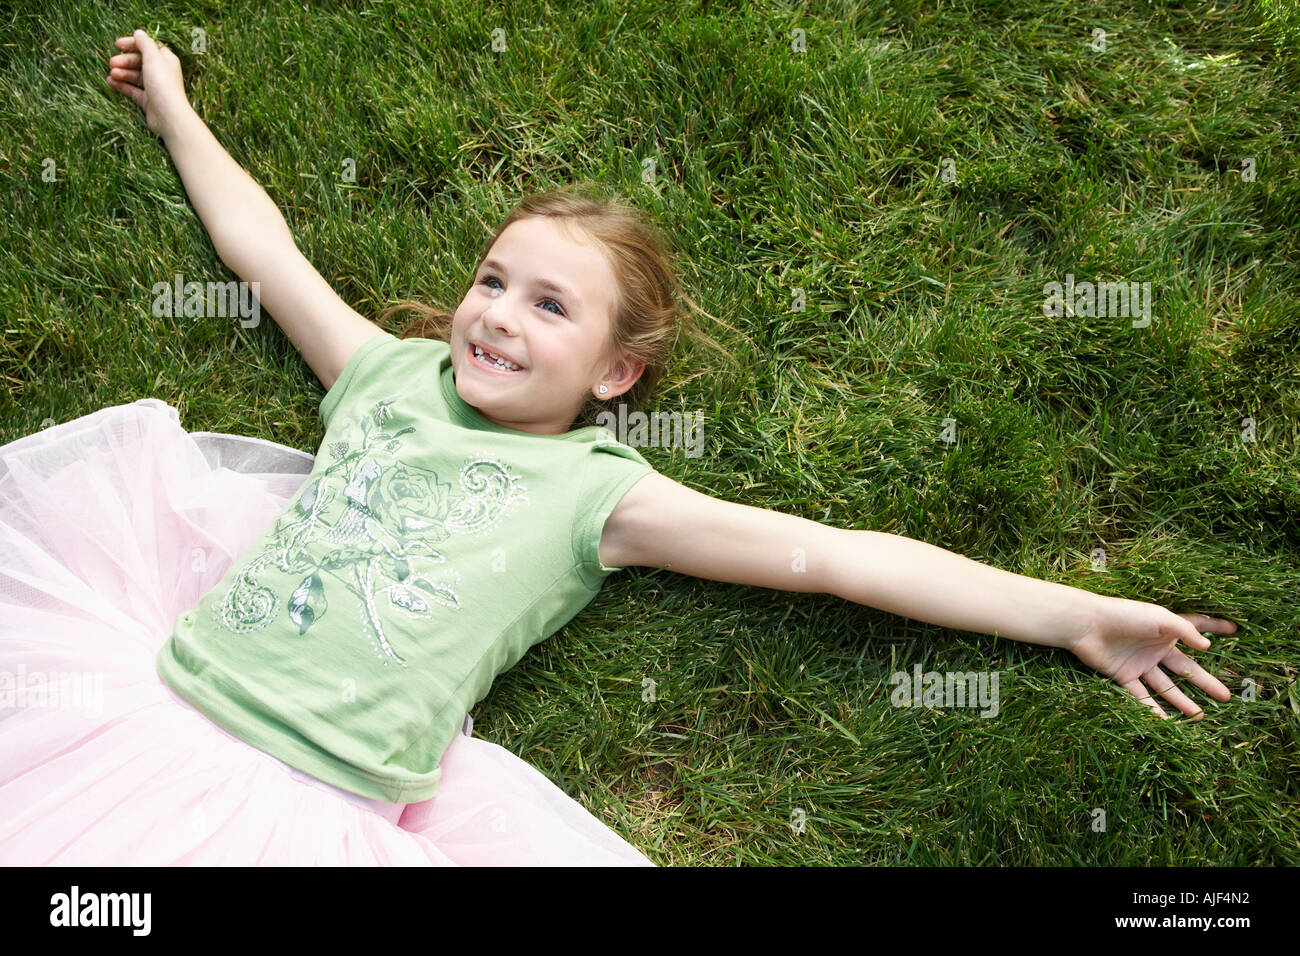 child lying down on the grass stockfotos child lying down on the grass bilder seite 3 alamy. Black Bedroom Furniture Sets. Home Design Ideas